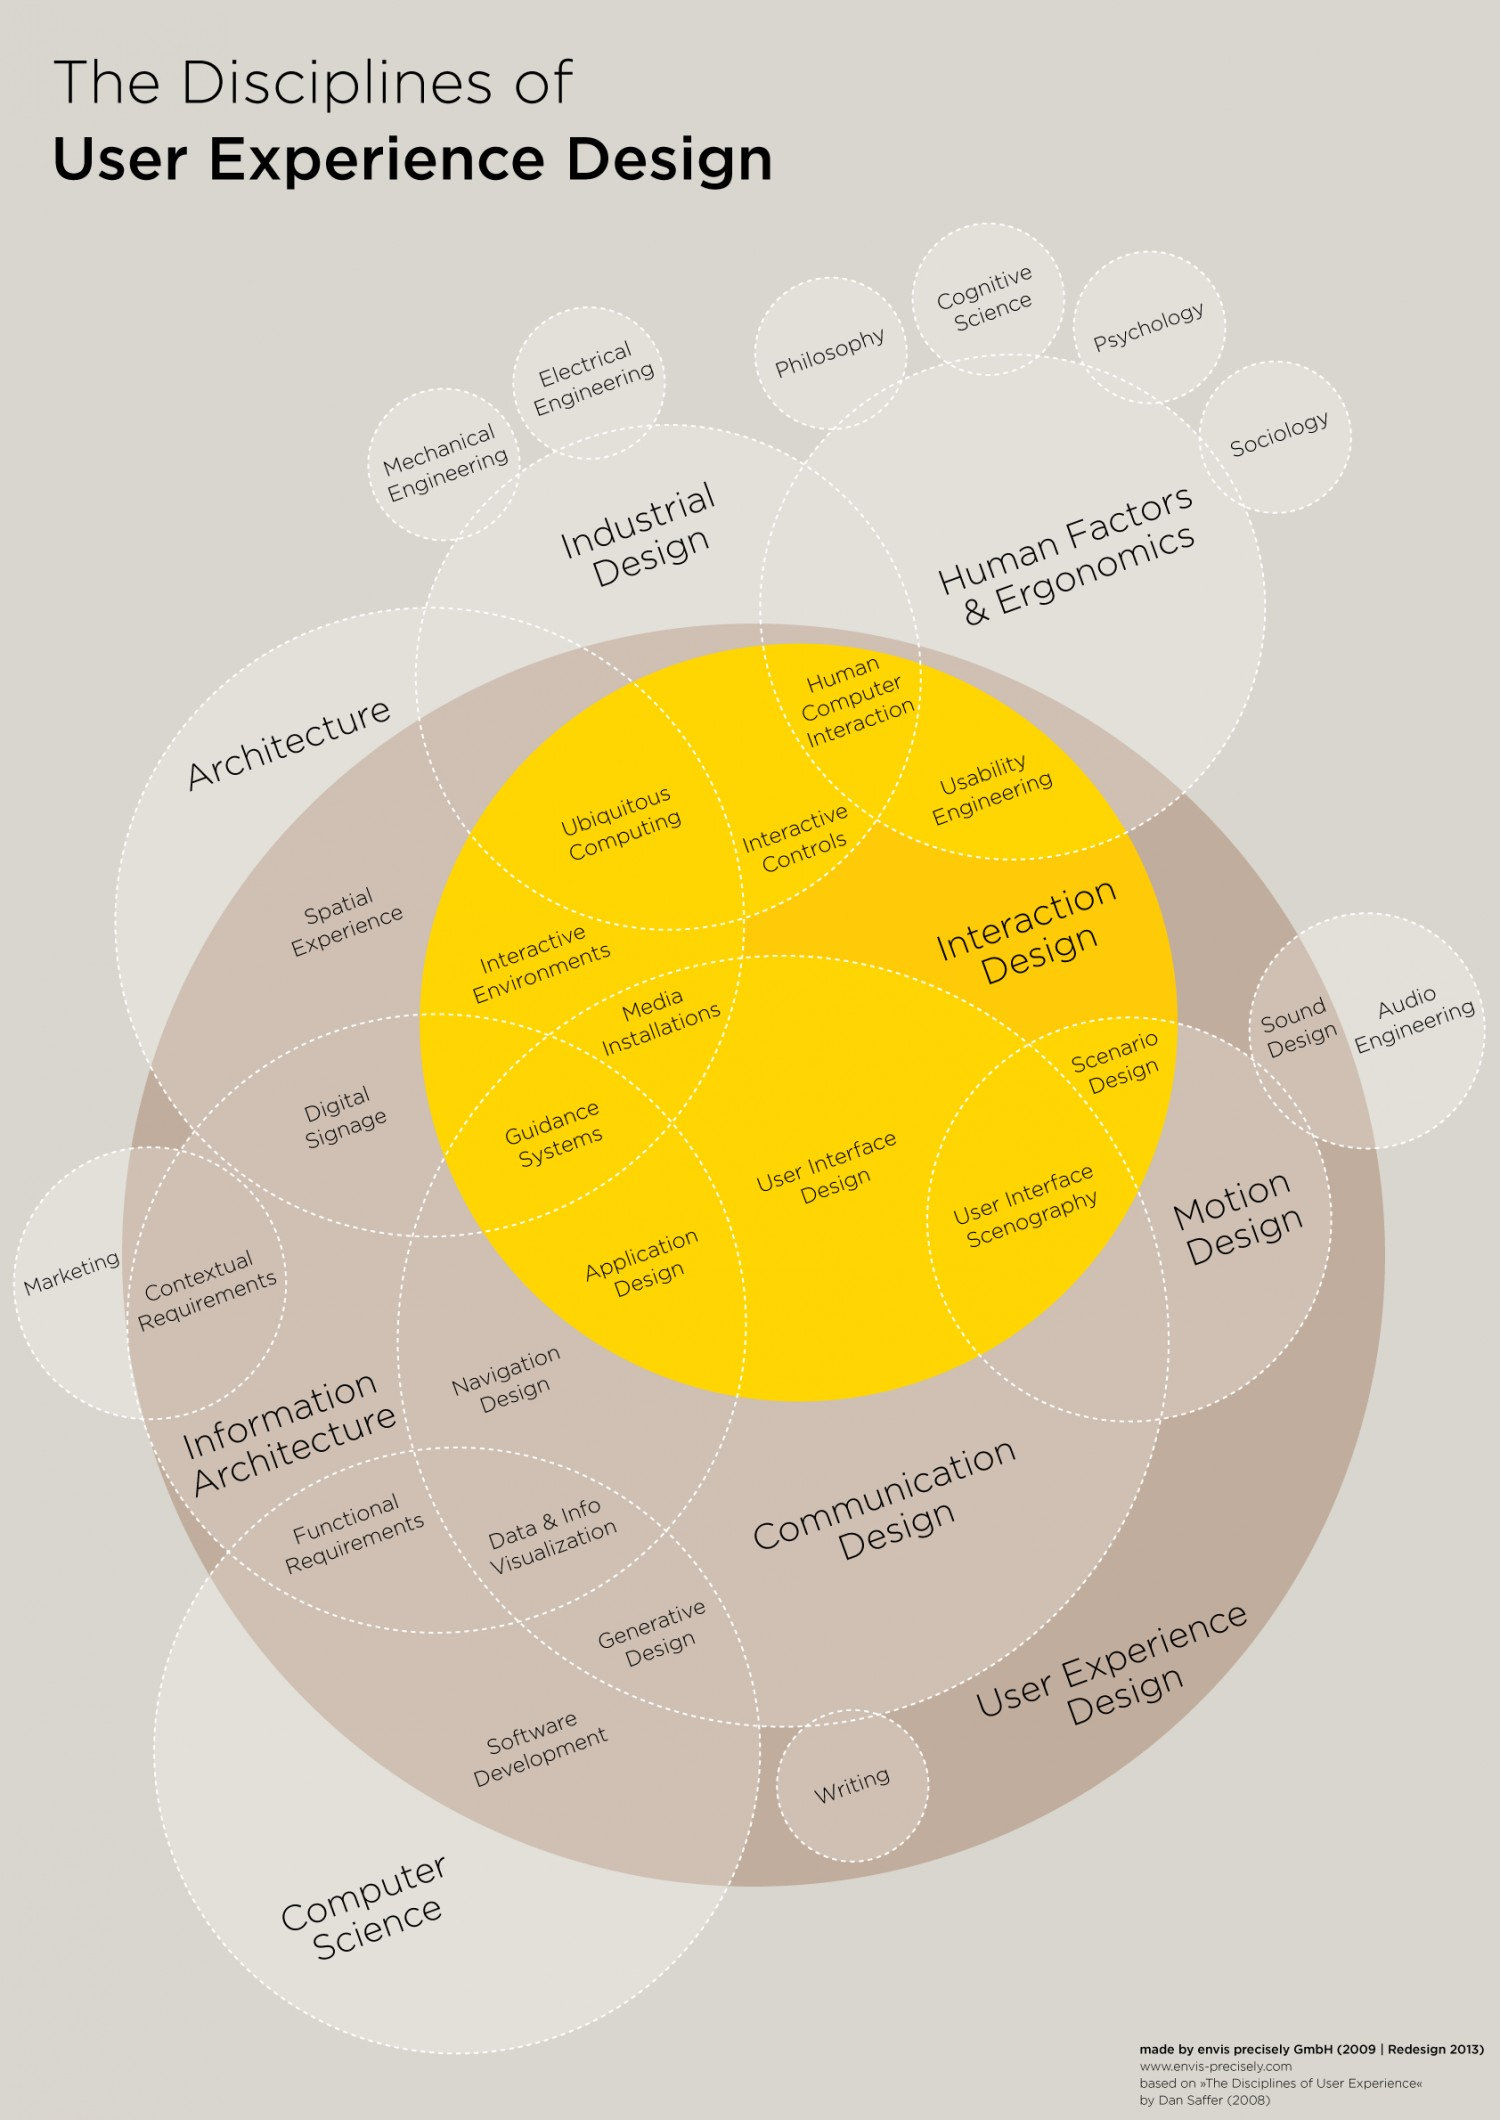 User Experience Design Disciplines